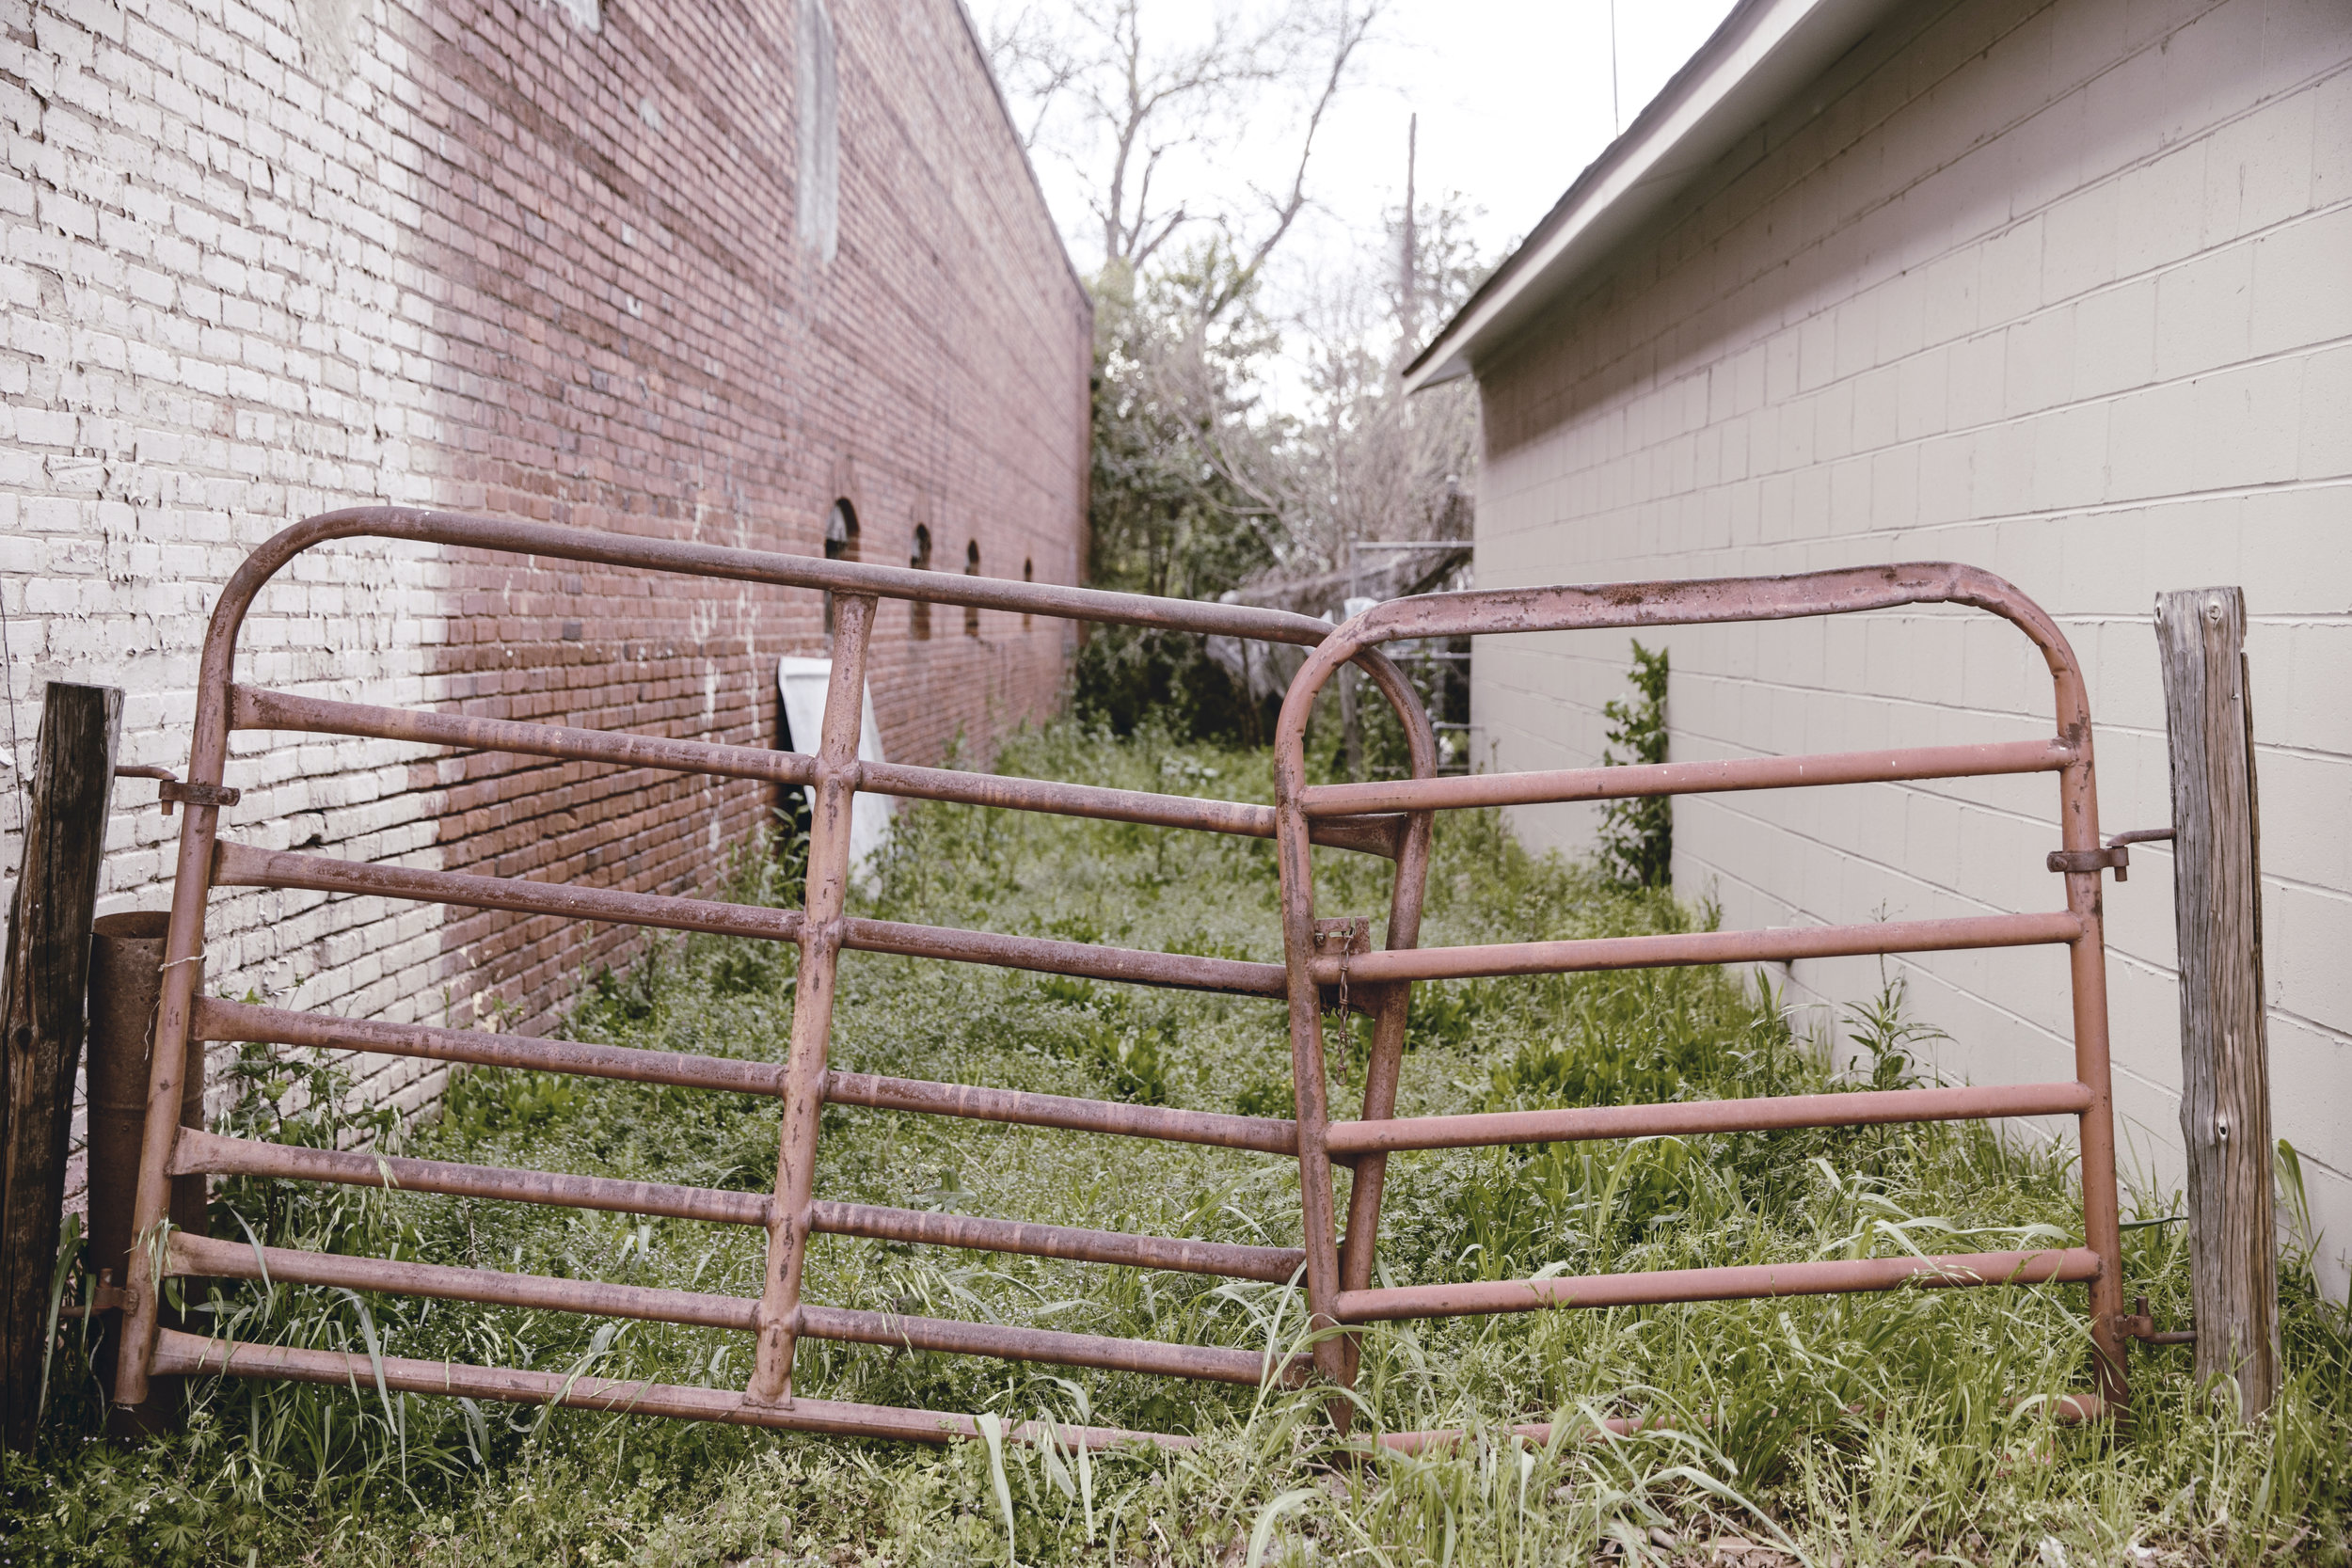 town square alley and metal gate in Monticello ga / heirloomed